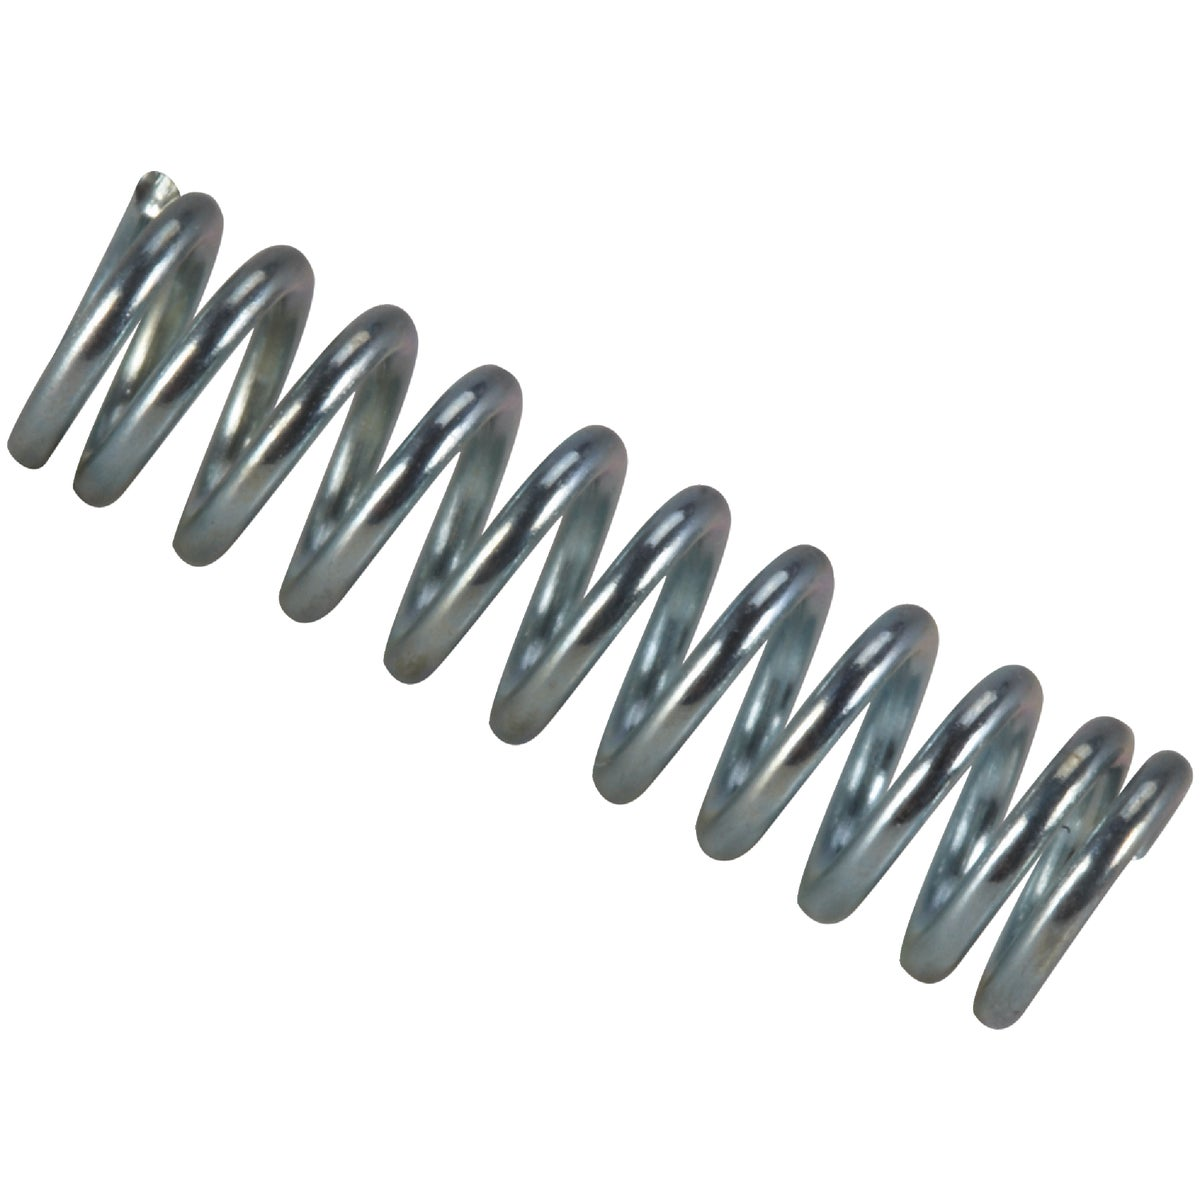 COMPRESSION SPRING - C-706 by Century Spring Corp